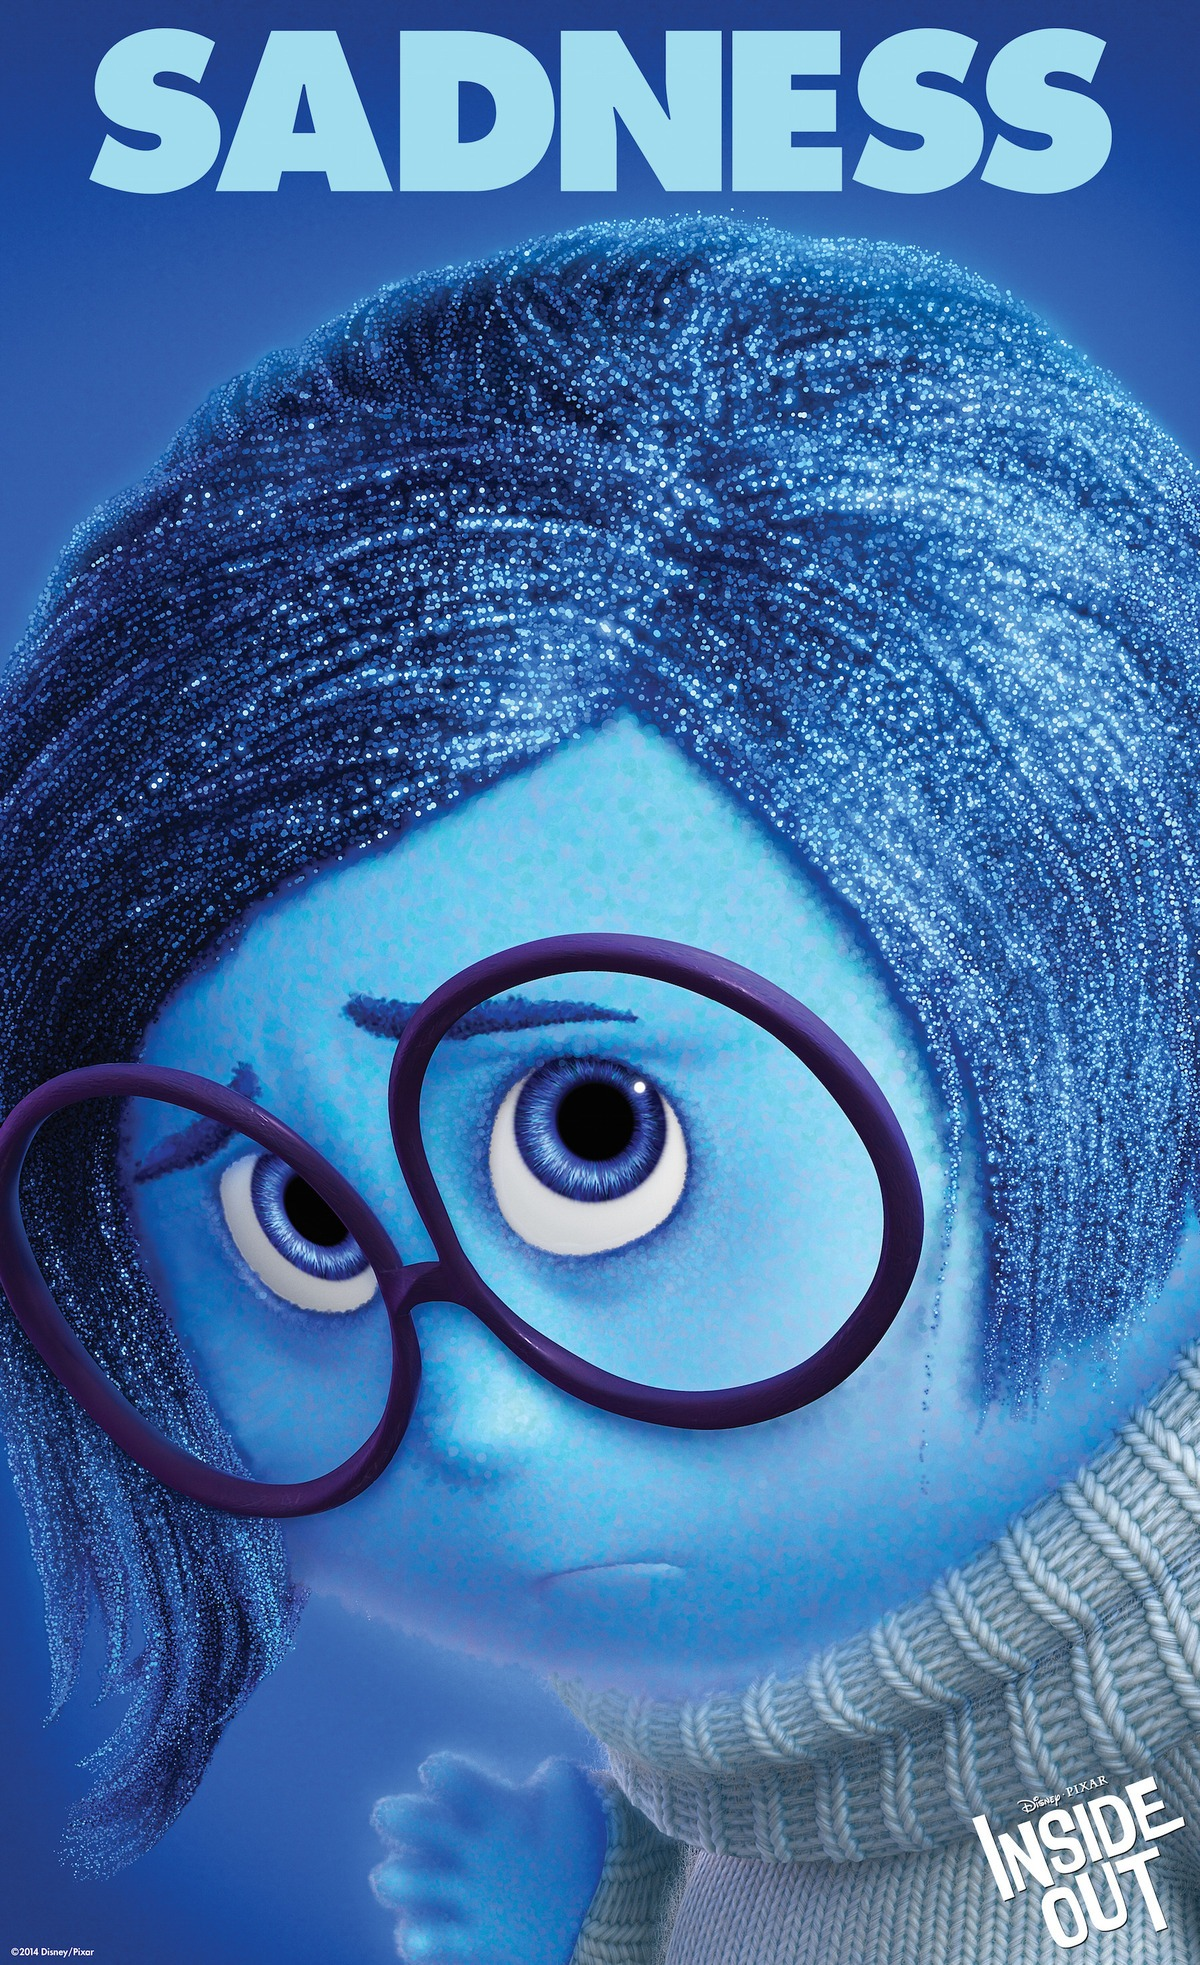 INSIDE OUT-Official Poster PROMO XLG-18NOVEMBRO2014-01